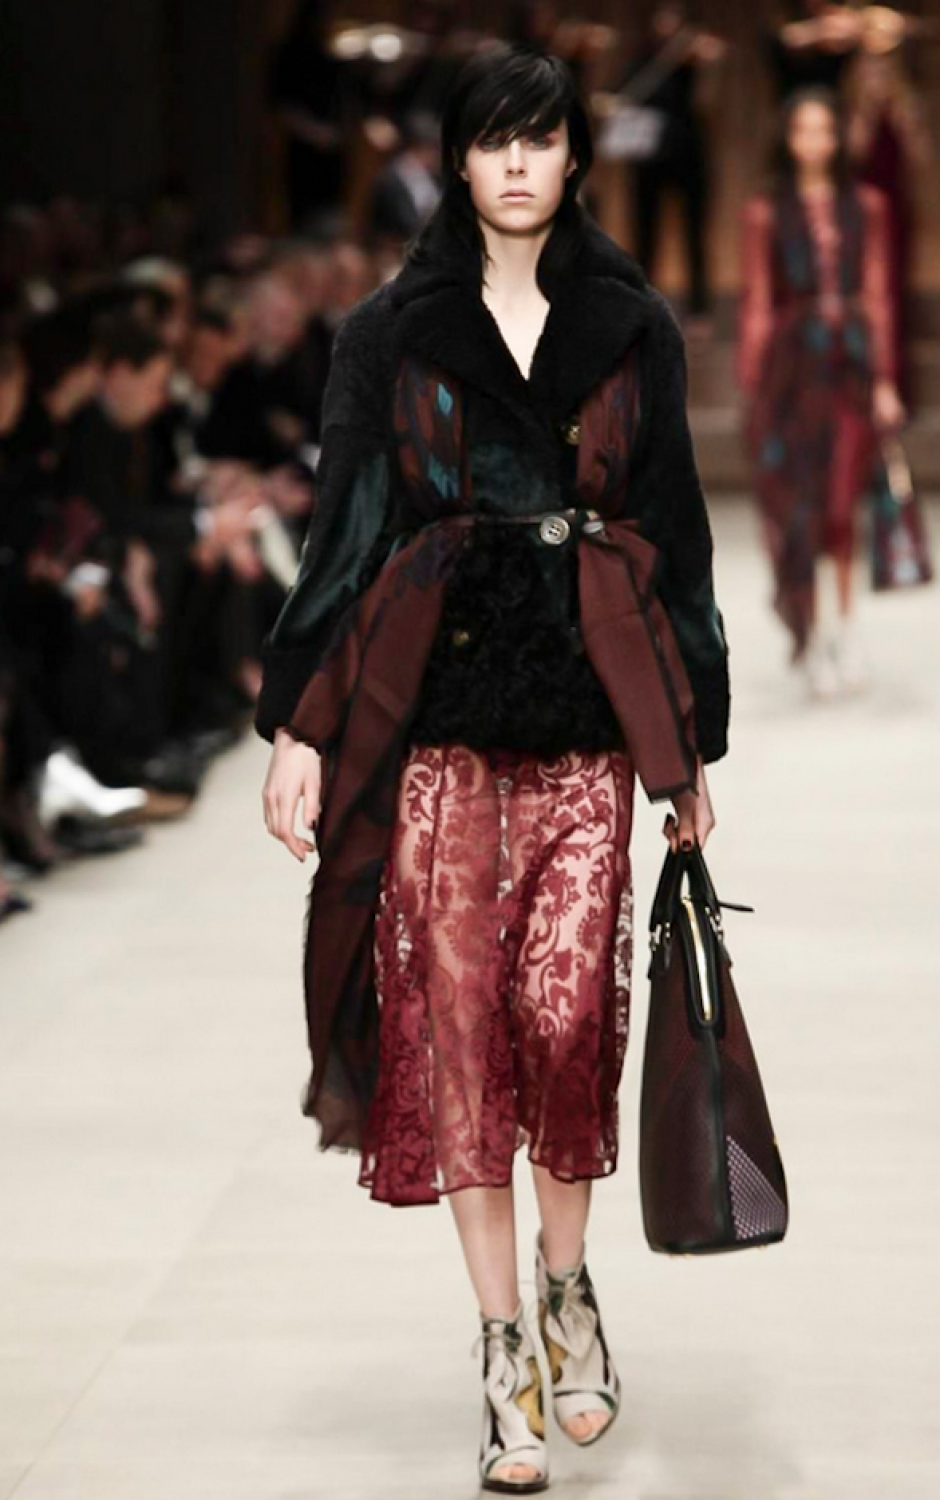 Burberry apuesta por el look gótico. (Foto: NowFashion)